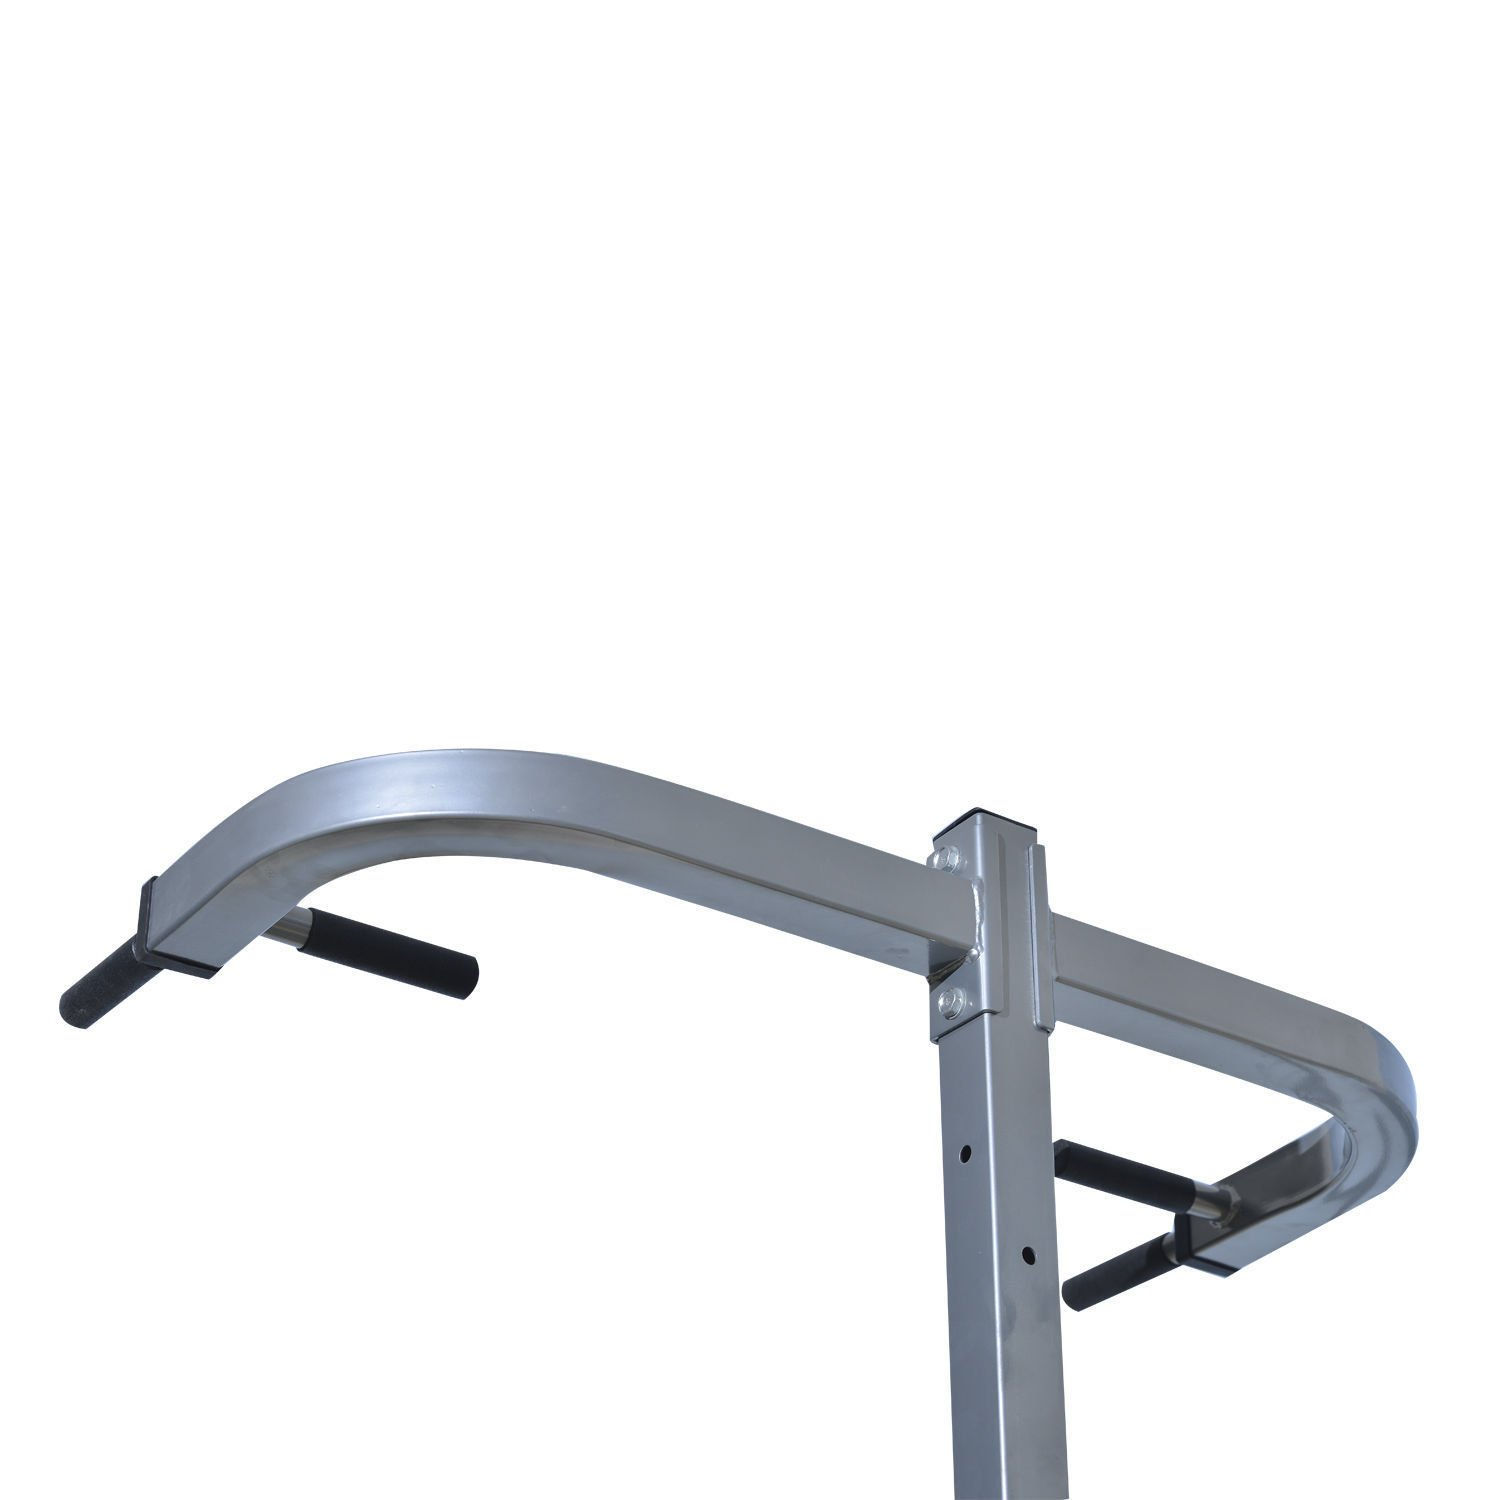 Home Gym Workout Strength Fitness Training Power Tower Dip Station Weight Bench by Happybeamy (Image #6)